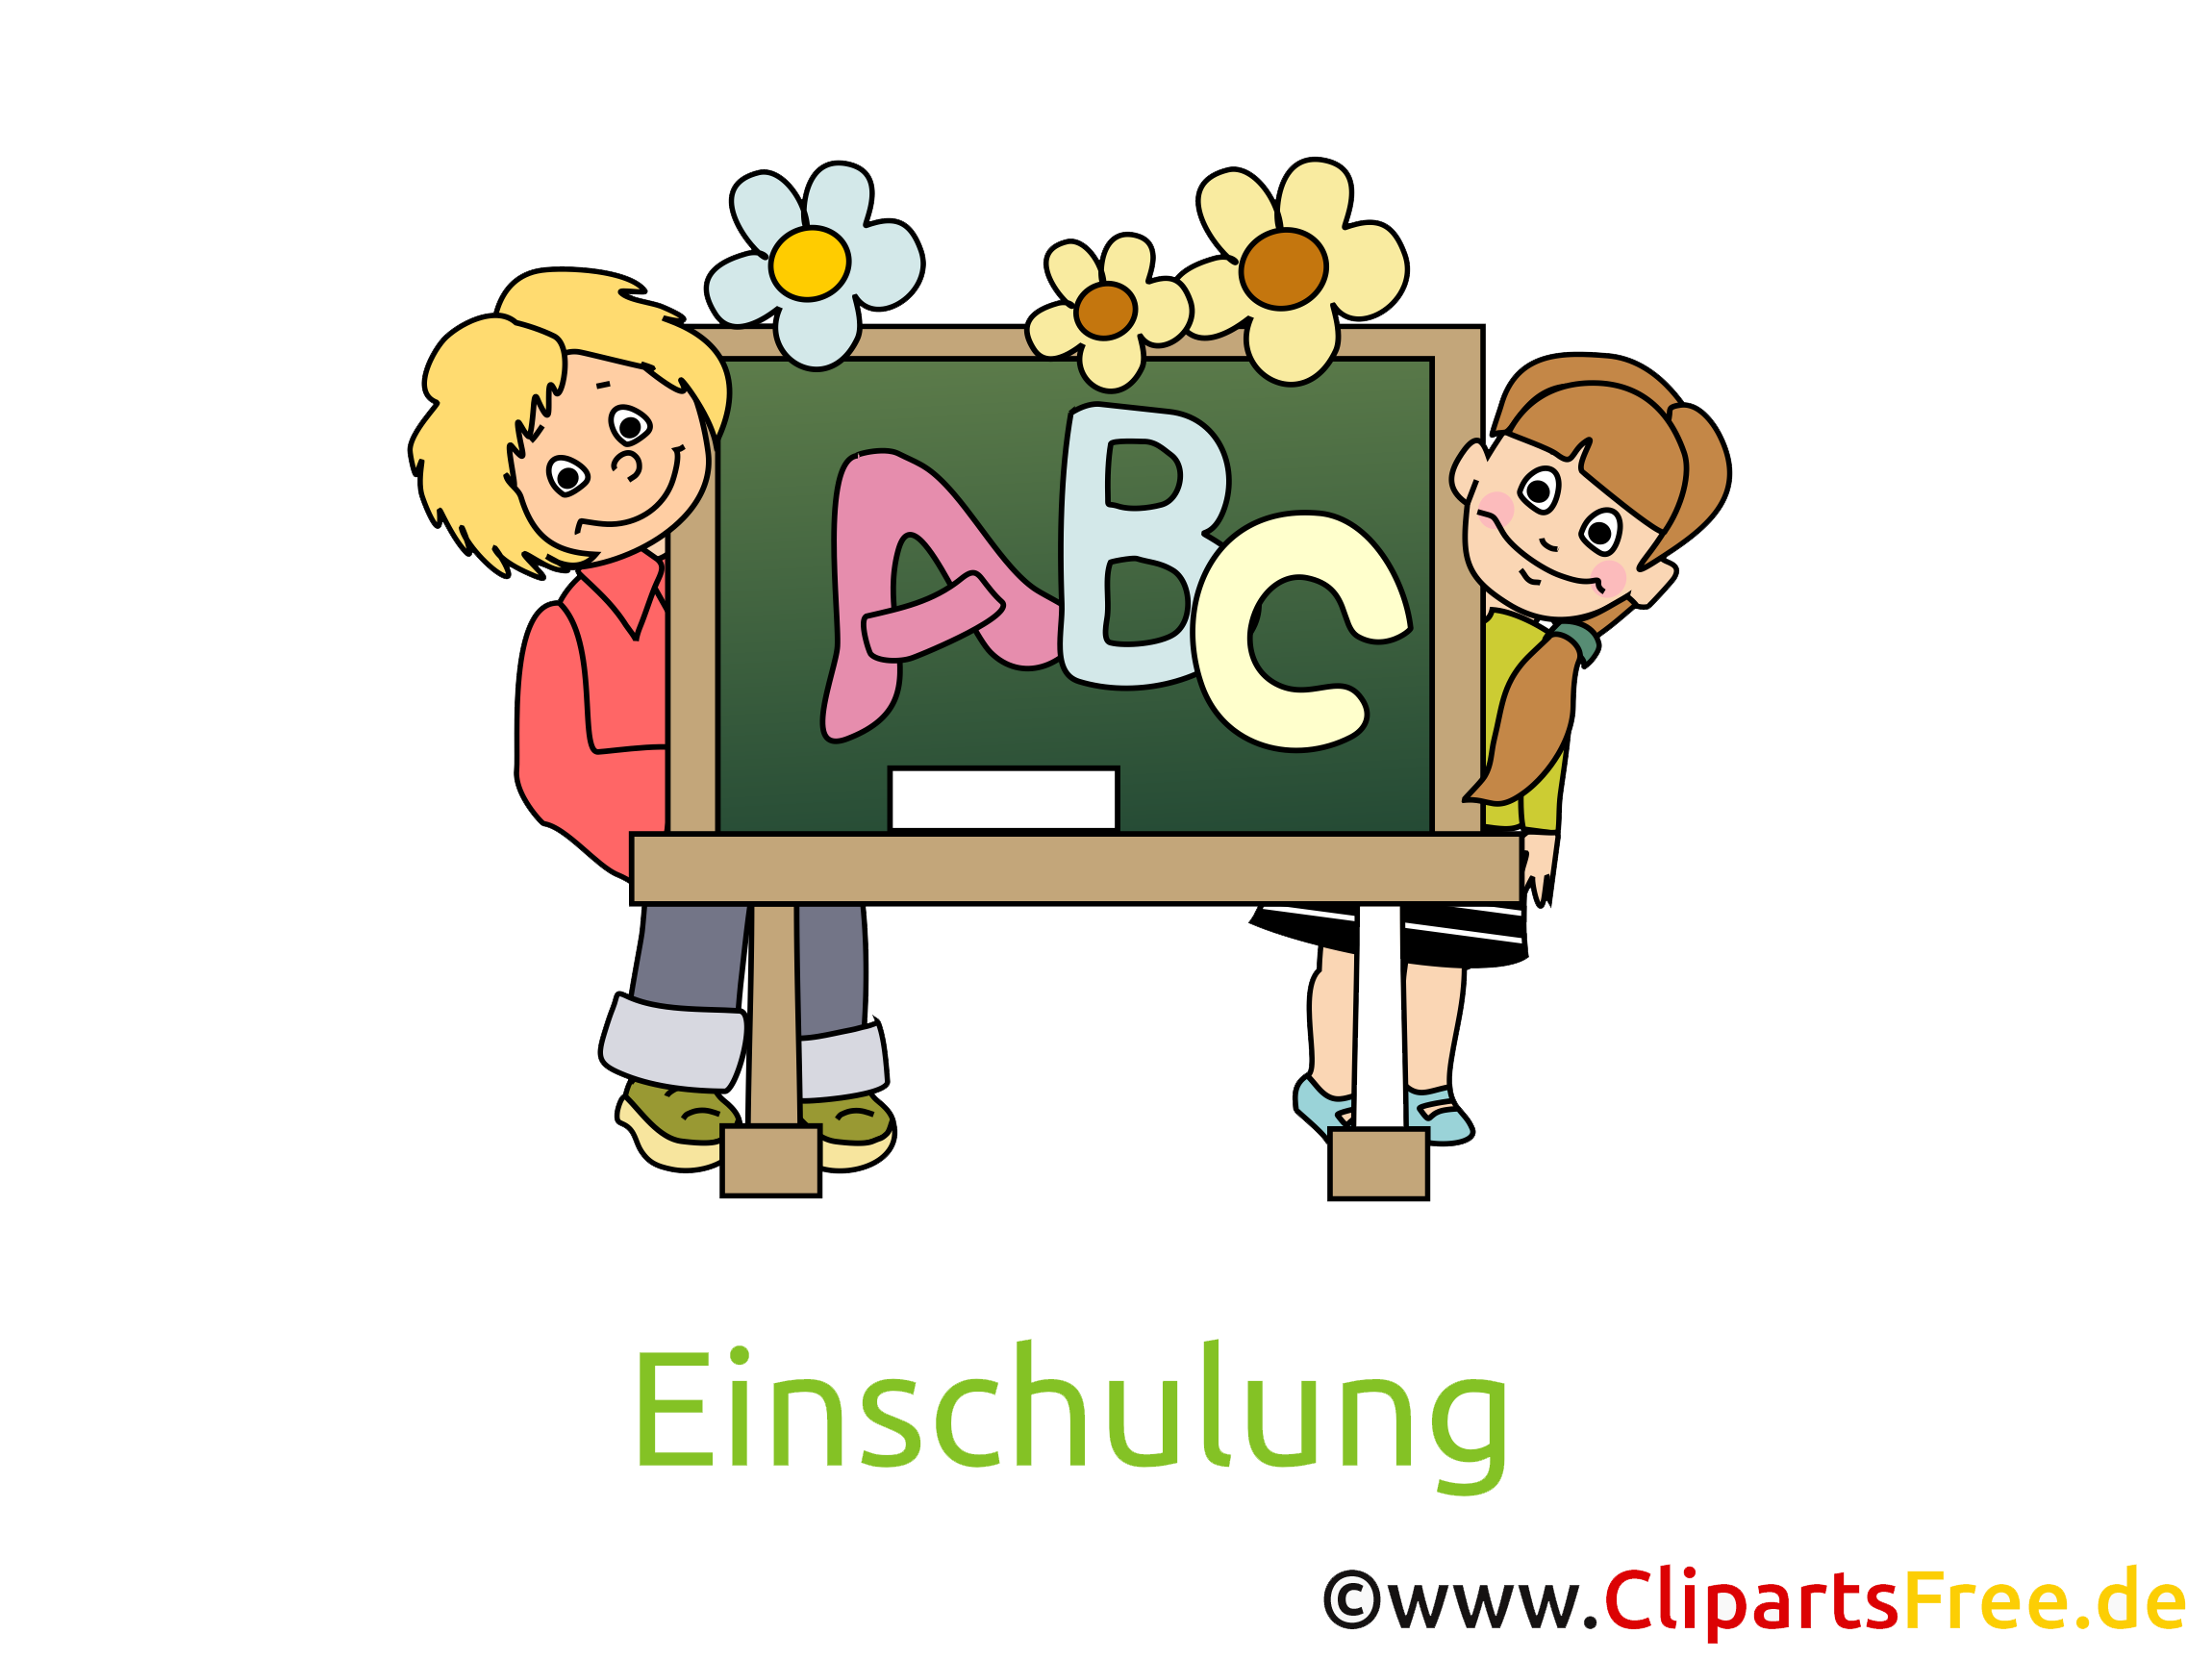 Clipart kostenlos schulanfang svg library Clipart kostenlos schulanfang - ClipartFest svg library